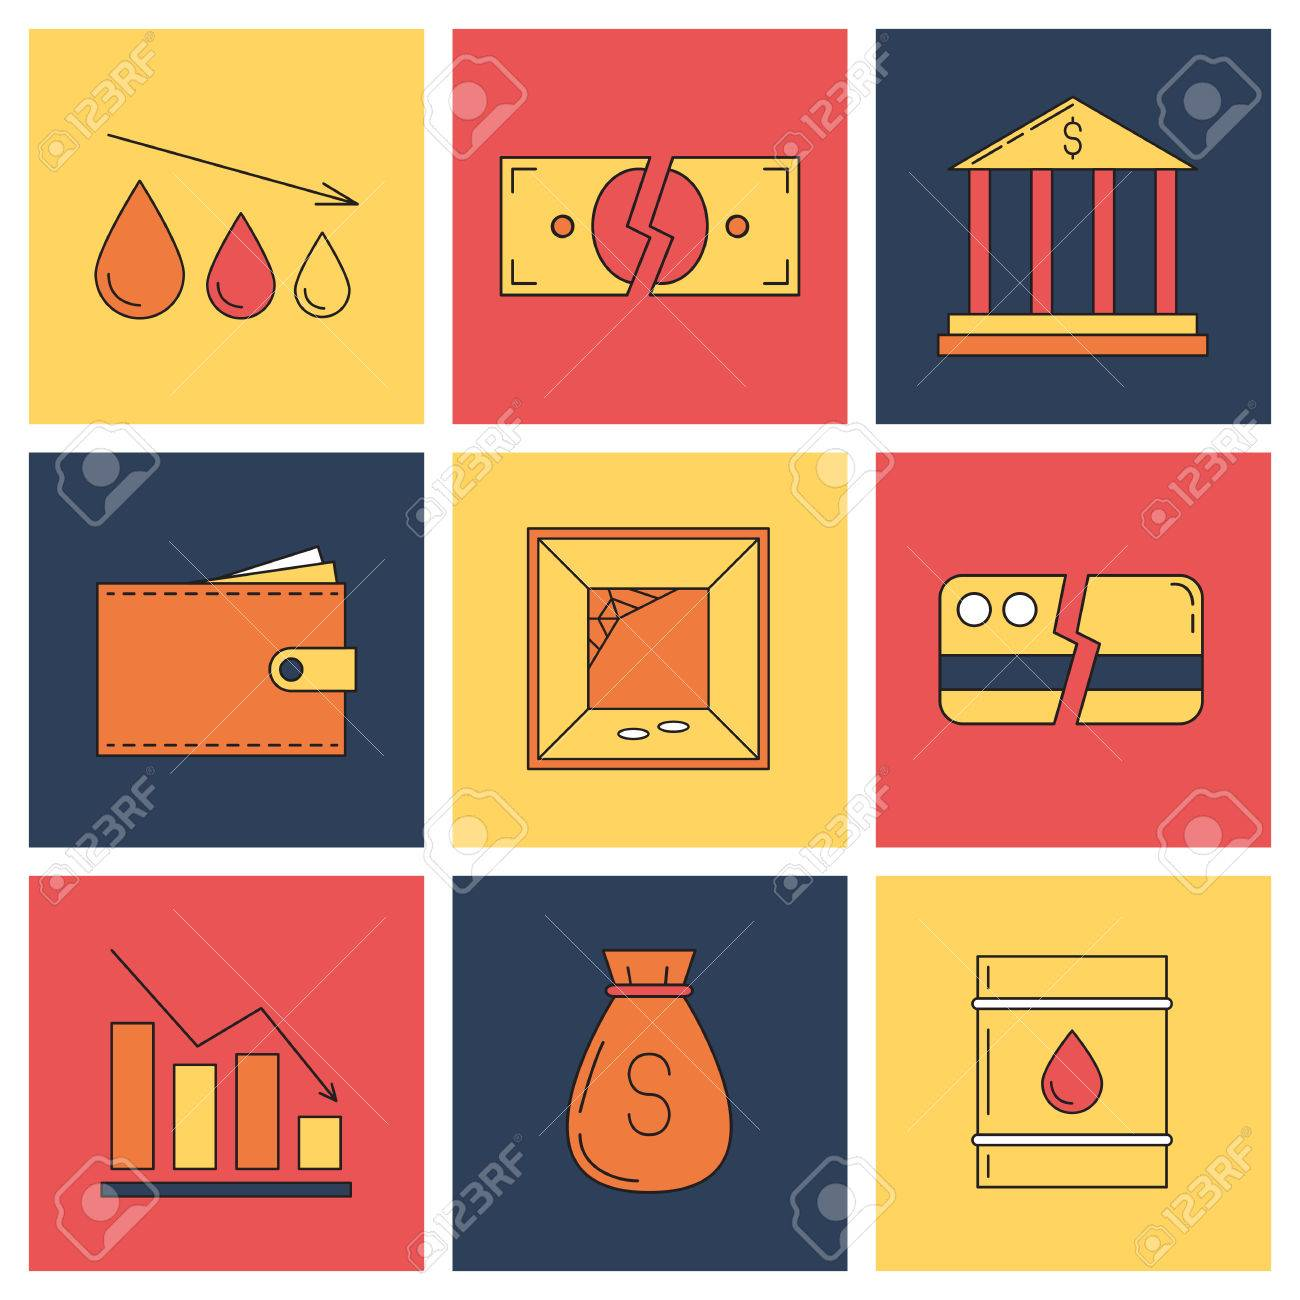 Set Of Economy Crysis Icons Vector Illustration Royalty Free